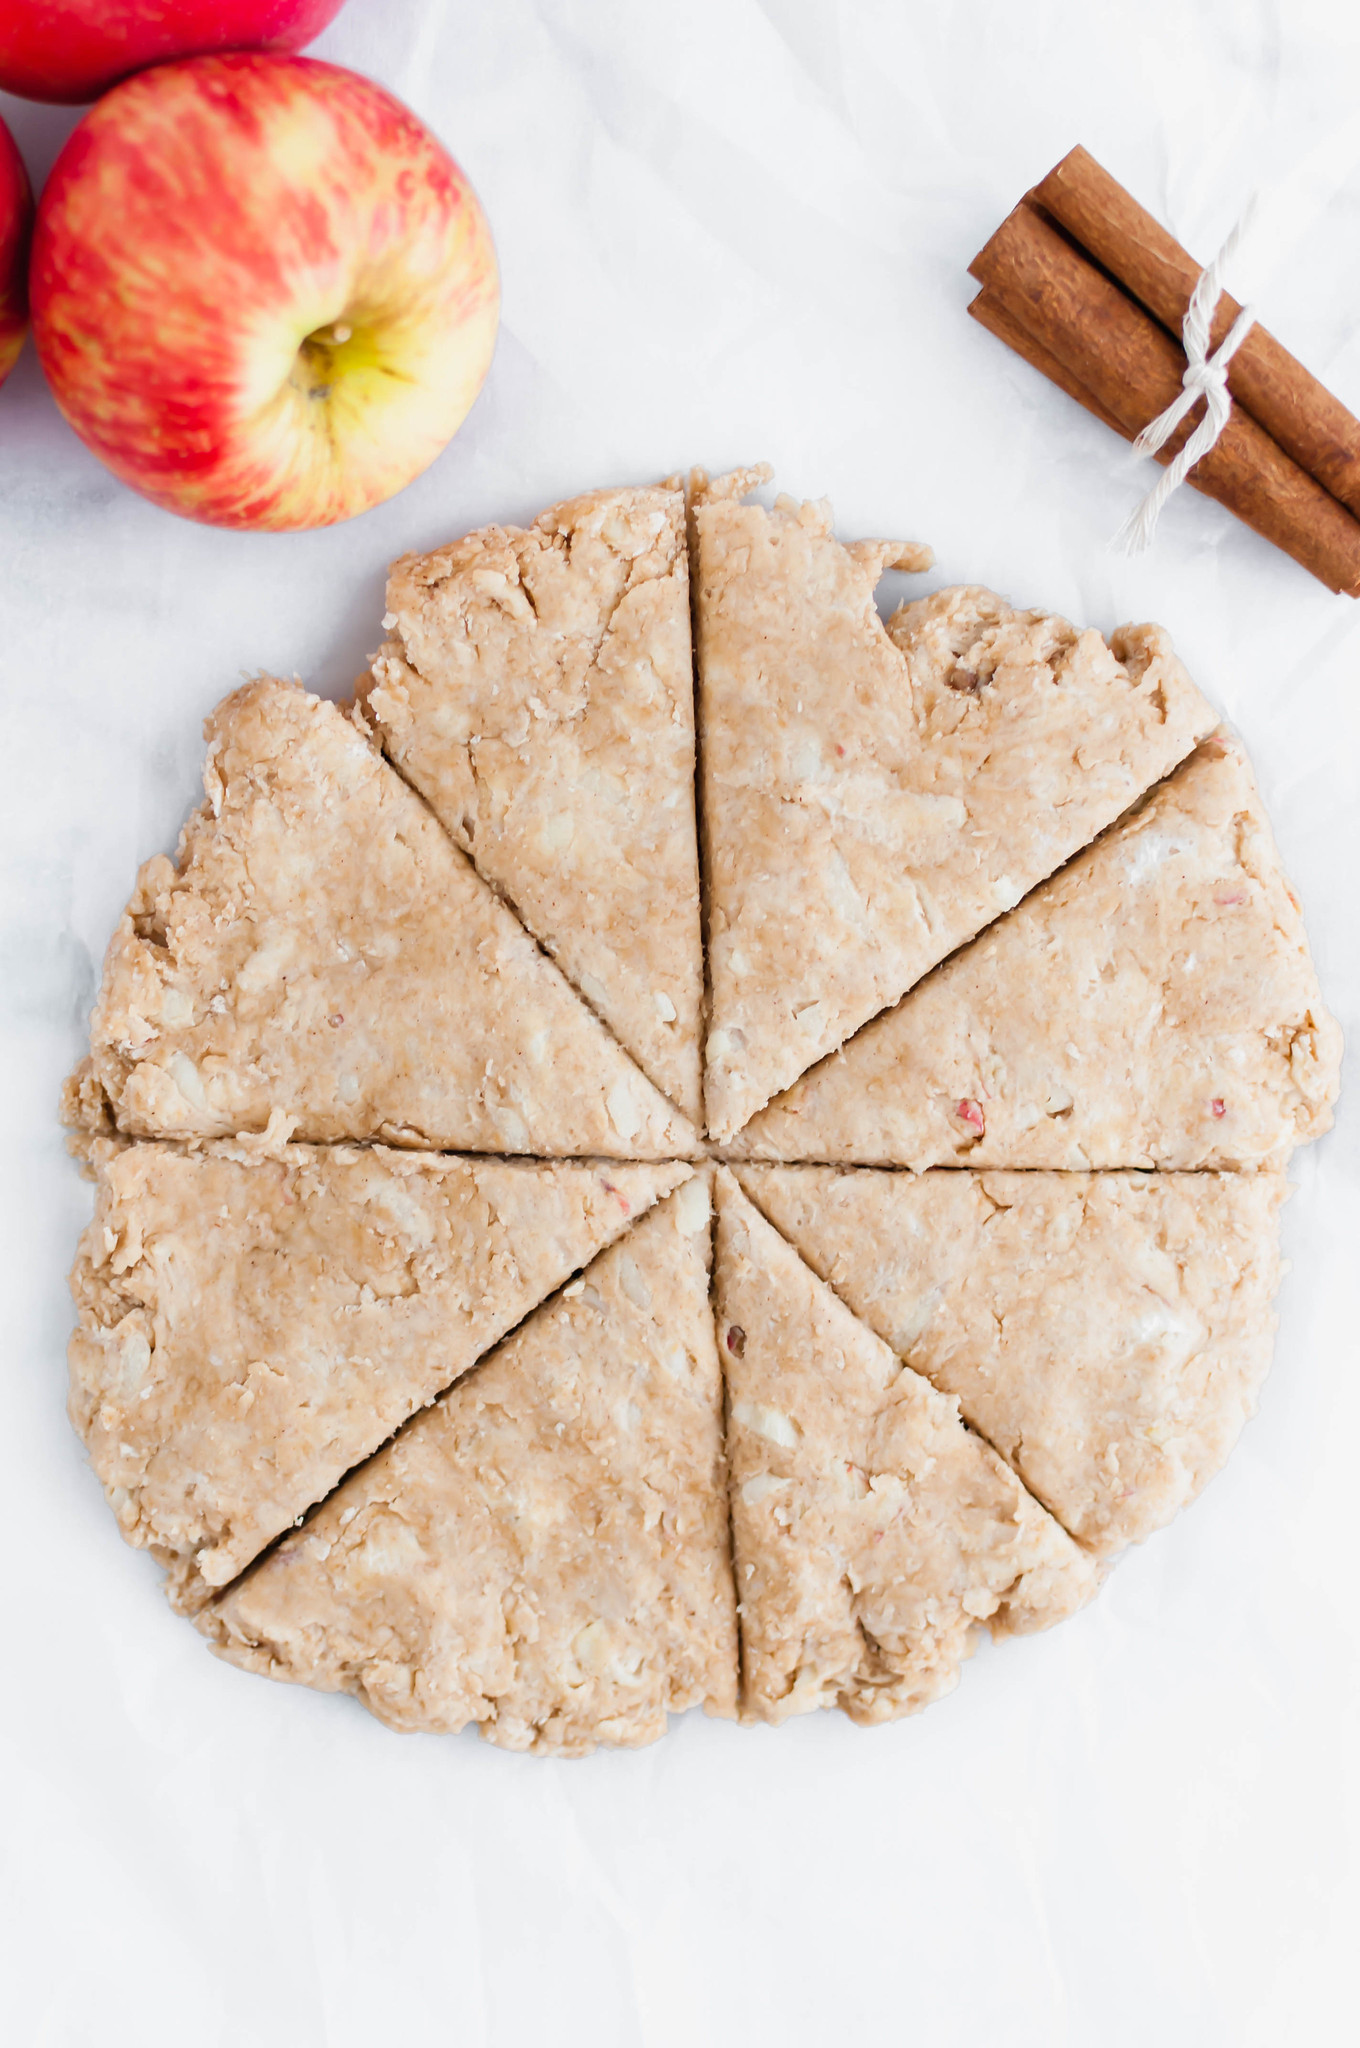 These Apple Cinnamon Scones with Maple Glaze are the perfect fall treat. Easy to make and perfectly tender.